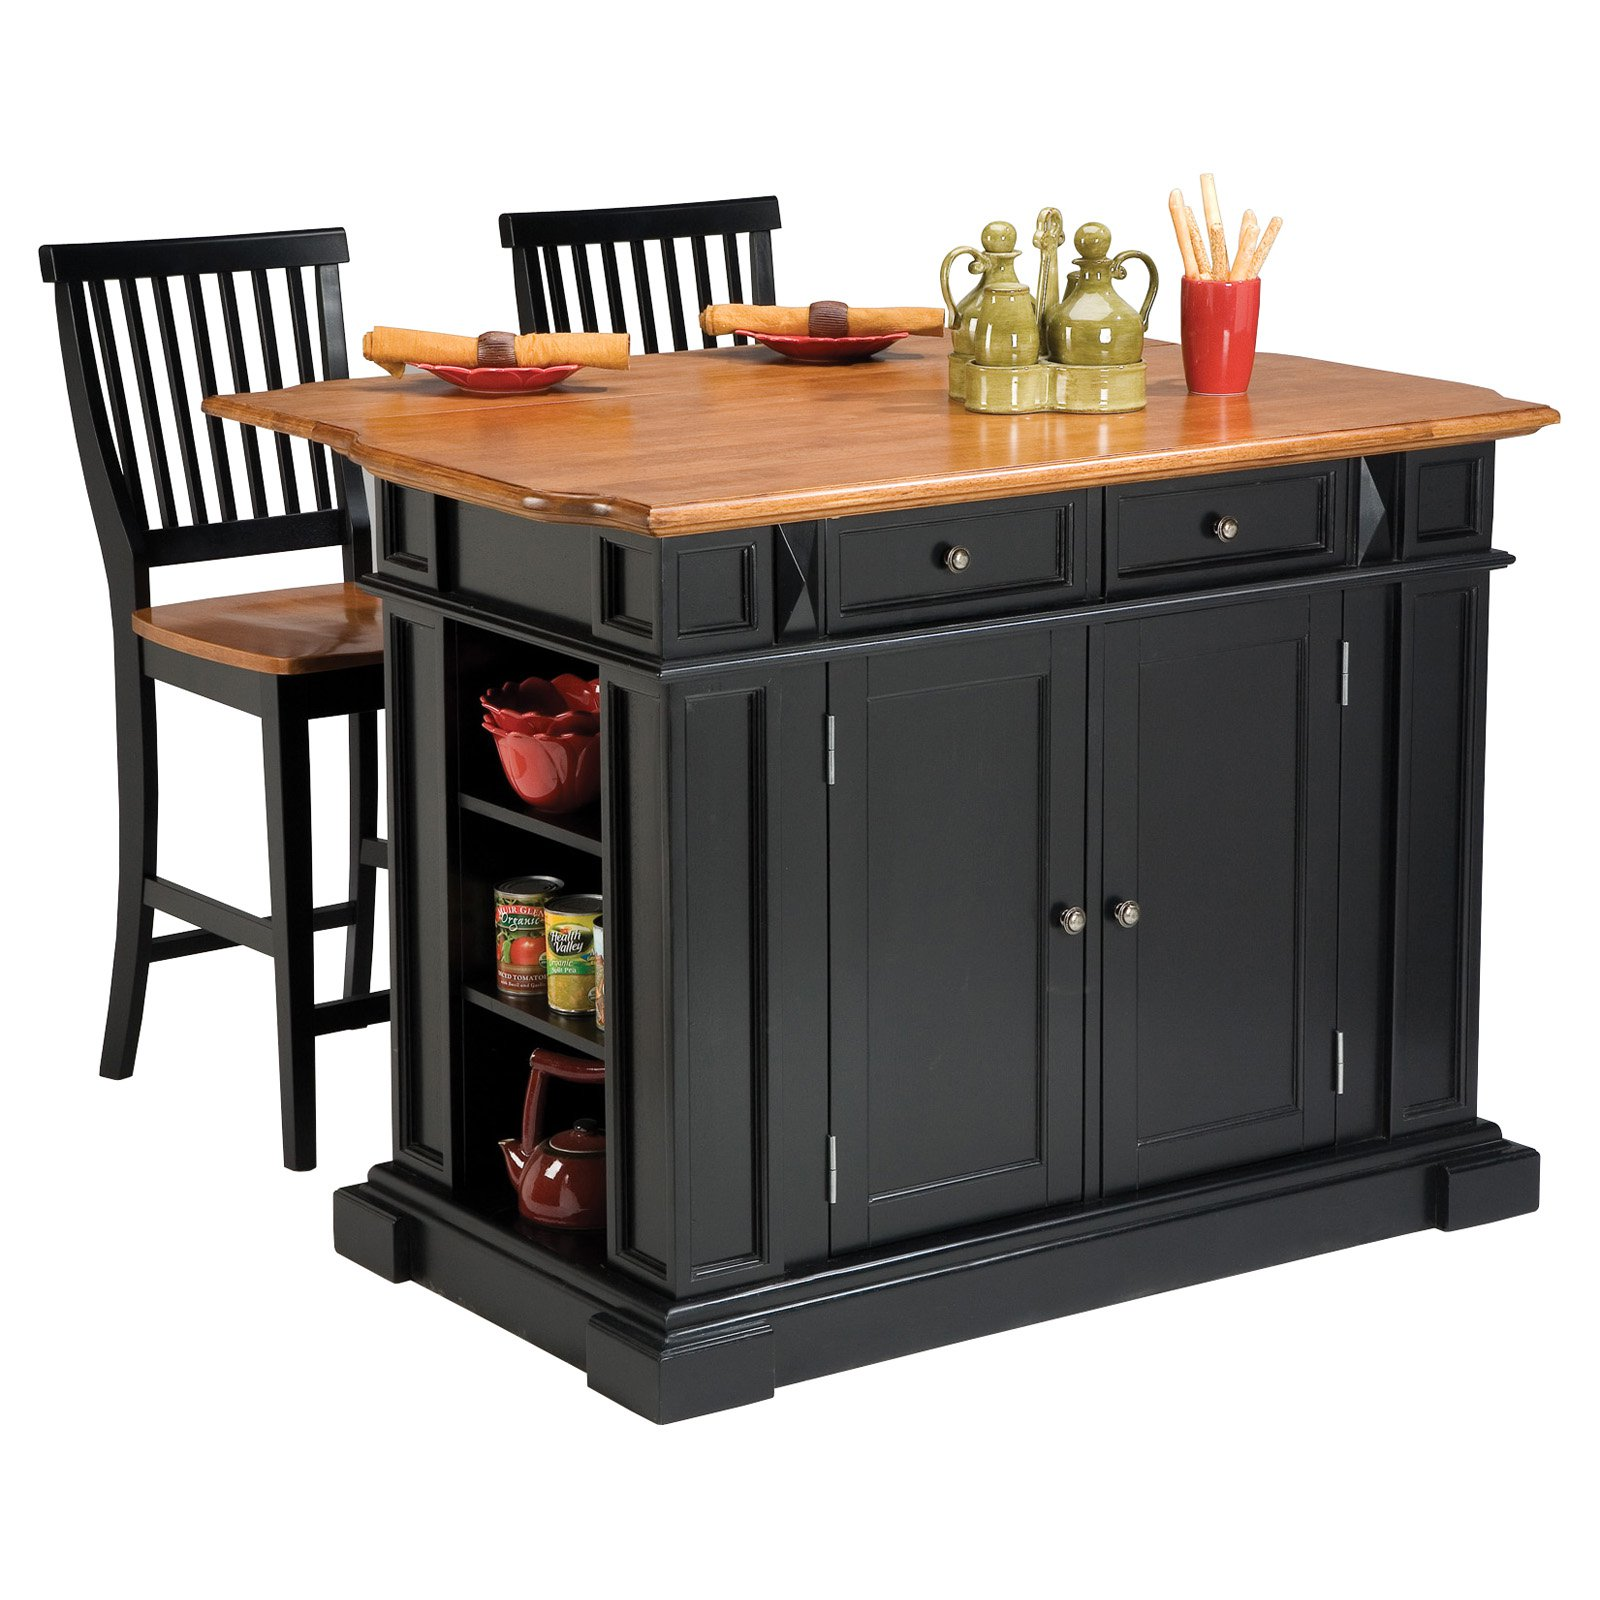 Origami Folding Kitchen Island Cart with Casters - YouTube | 1600x1600